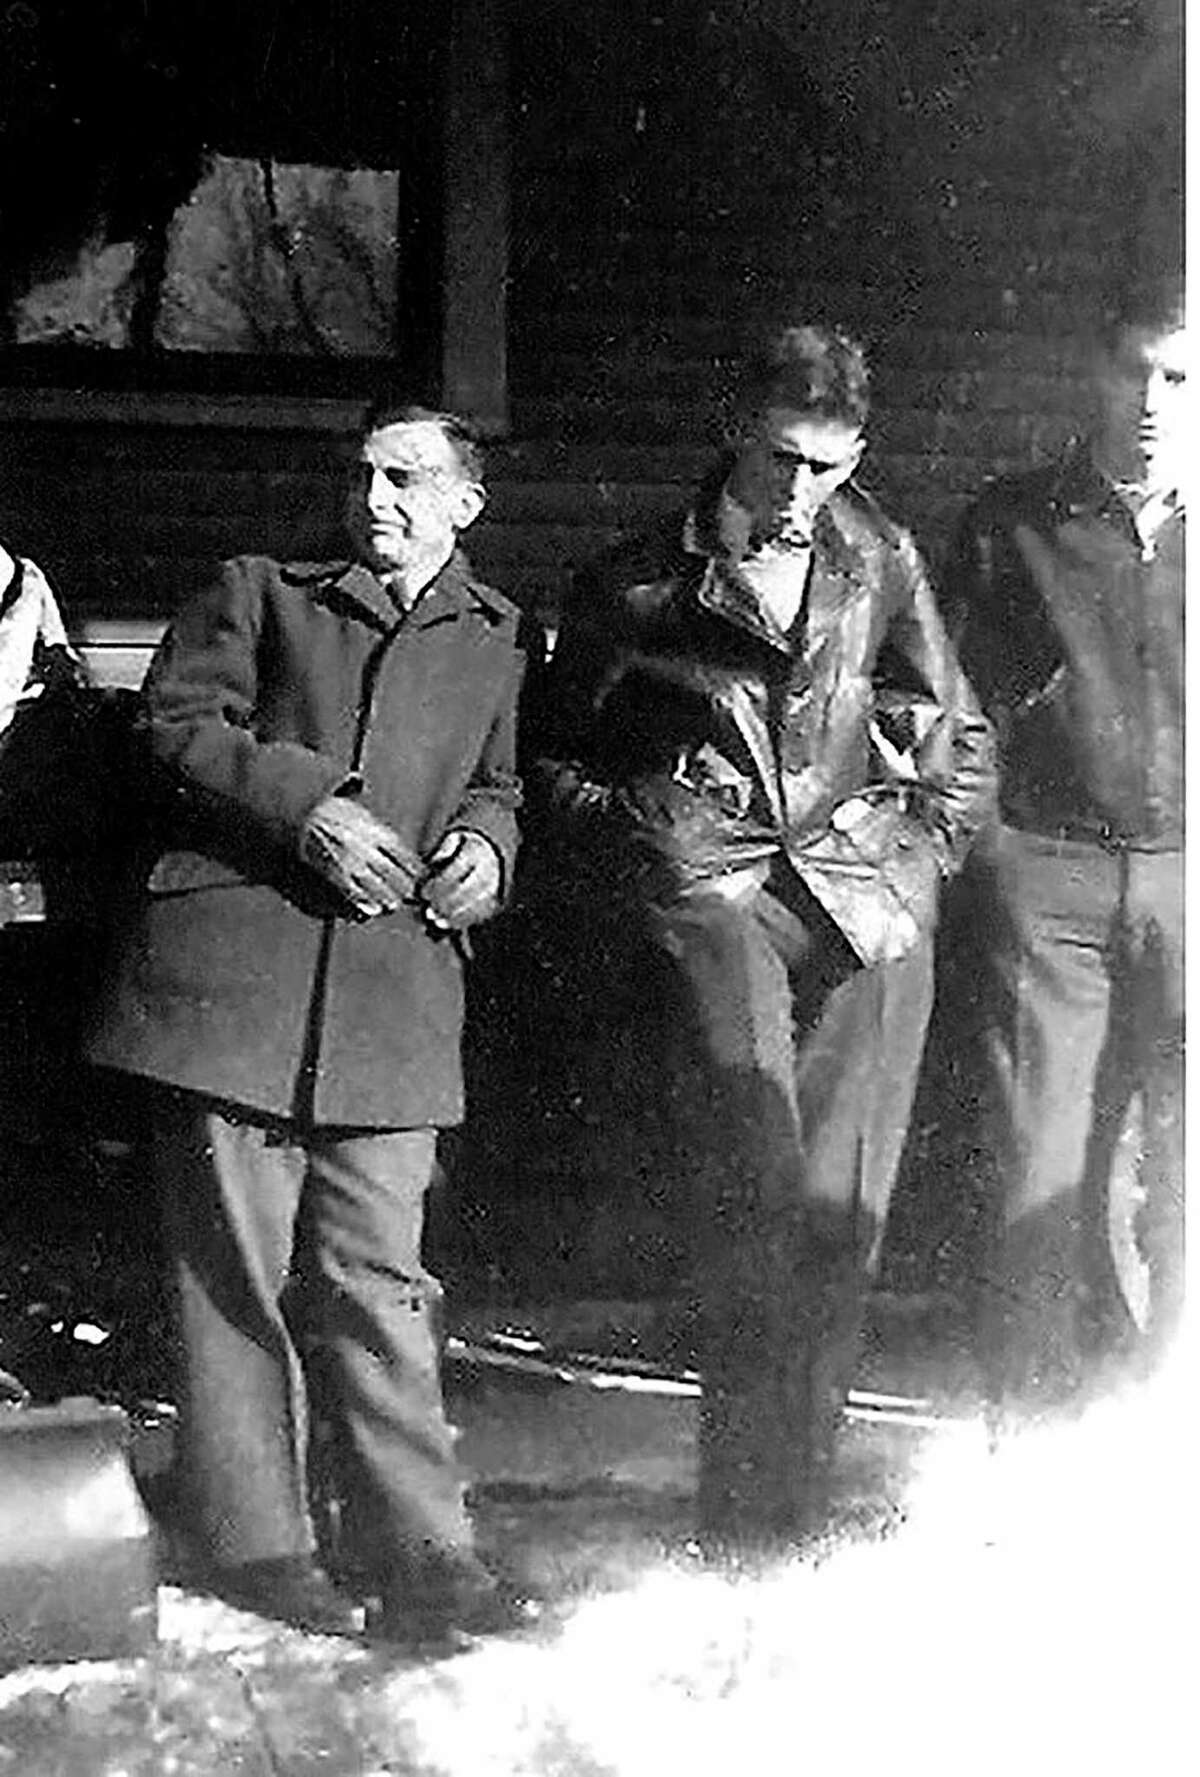 Ceo Bauer, Rolland Hill and Howard Berrywaitat the train station in Almaas the head off to the army. (Courtesy photo/Bruce Garlock)